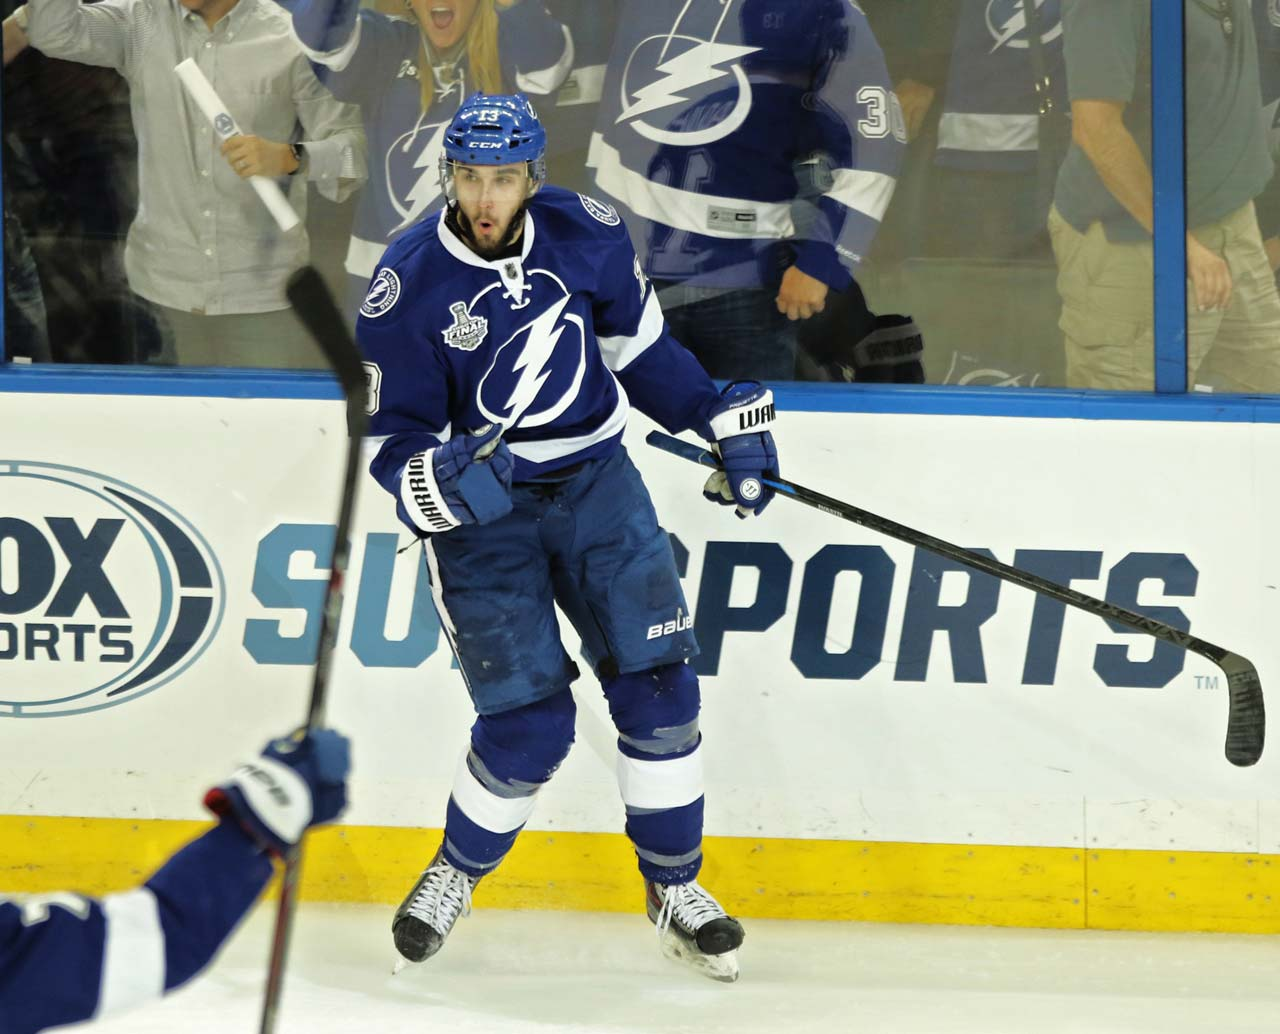 Cedric Paquette (13) of the Lightning celebrates his goal and the first score of the game for either team.